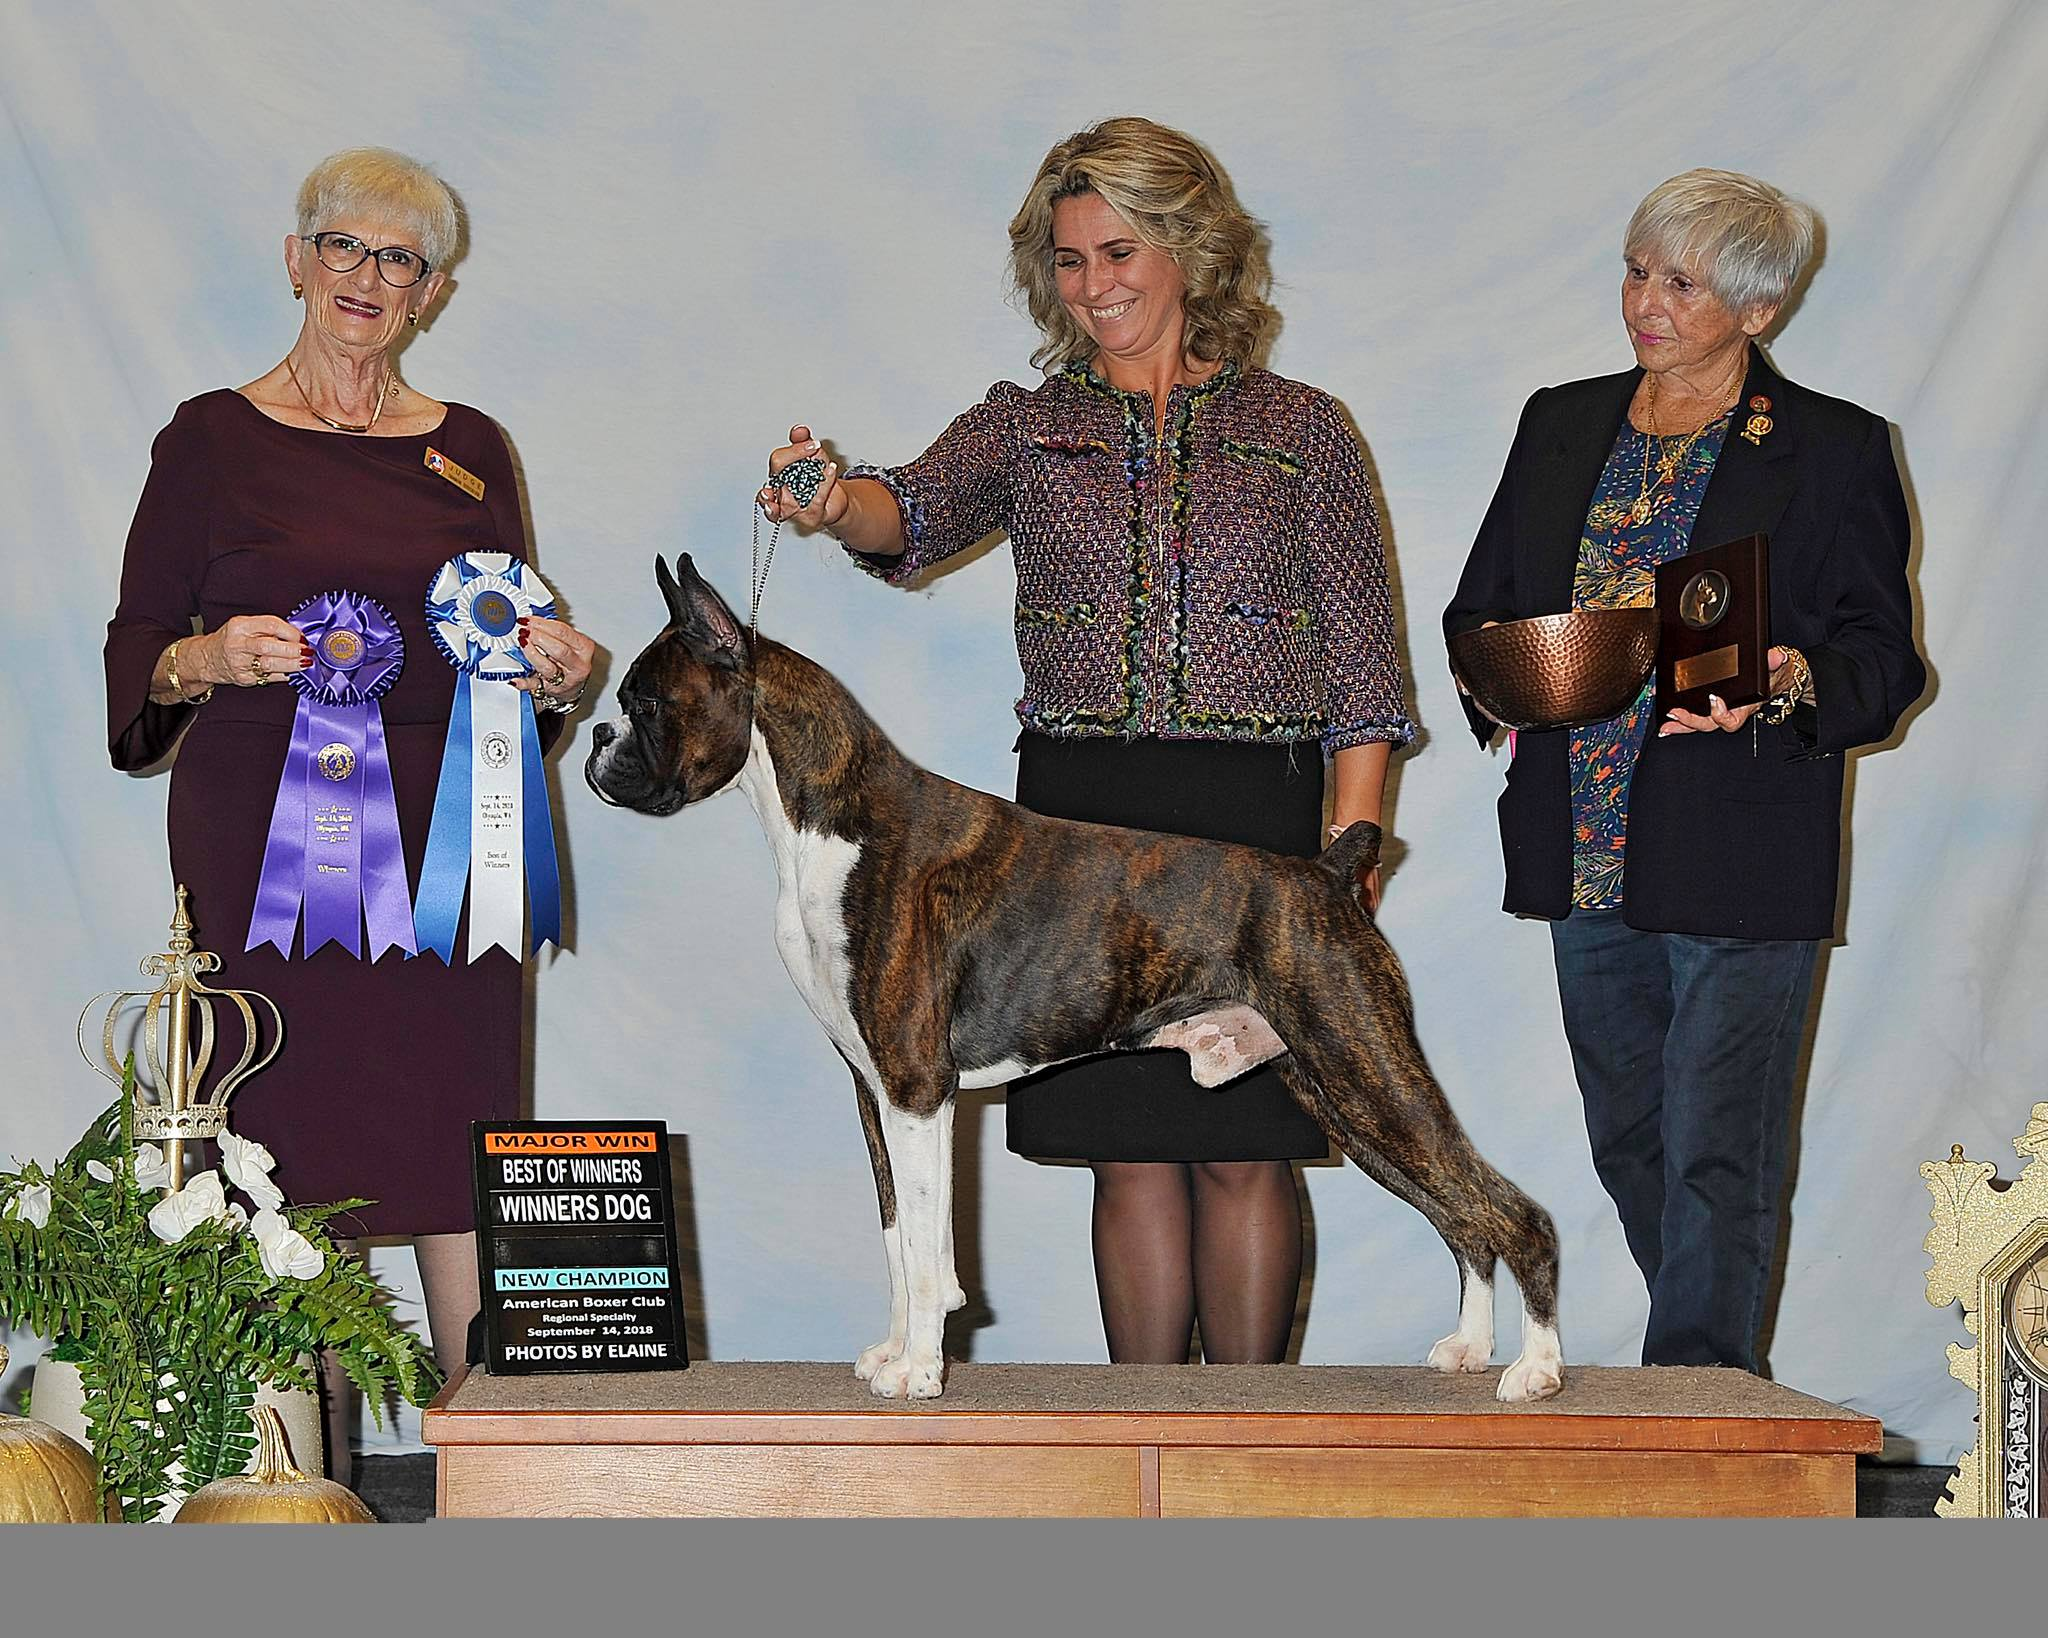 Markus the champion CKC and AKC boxer in a dog show win photo